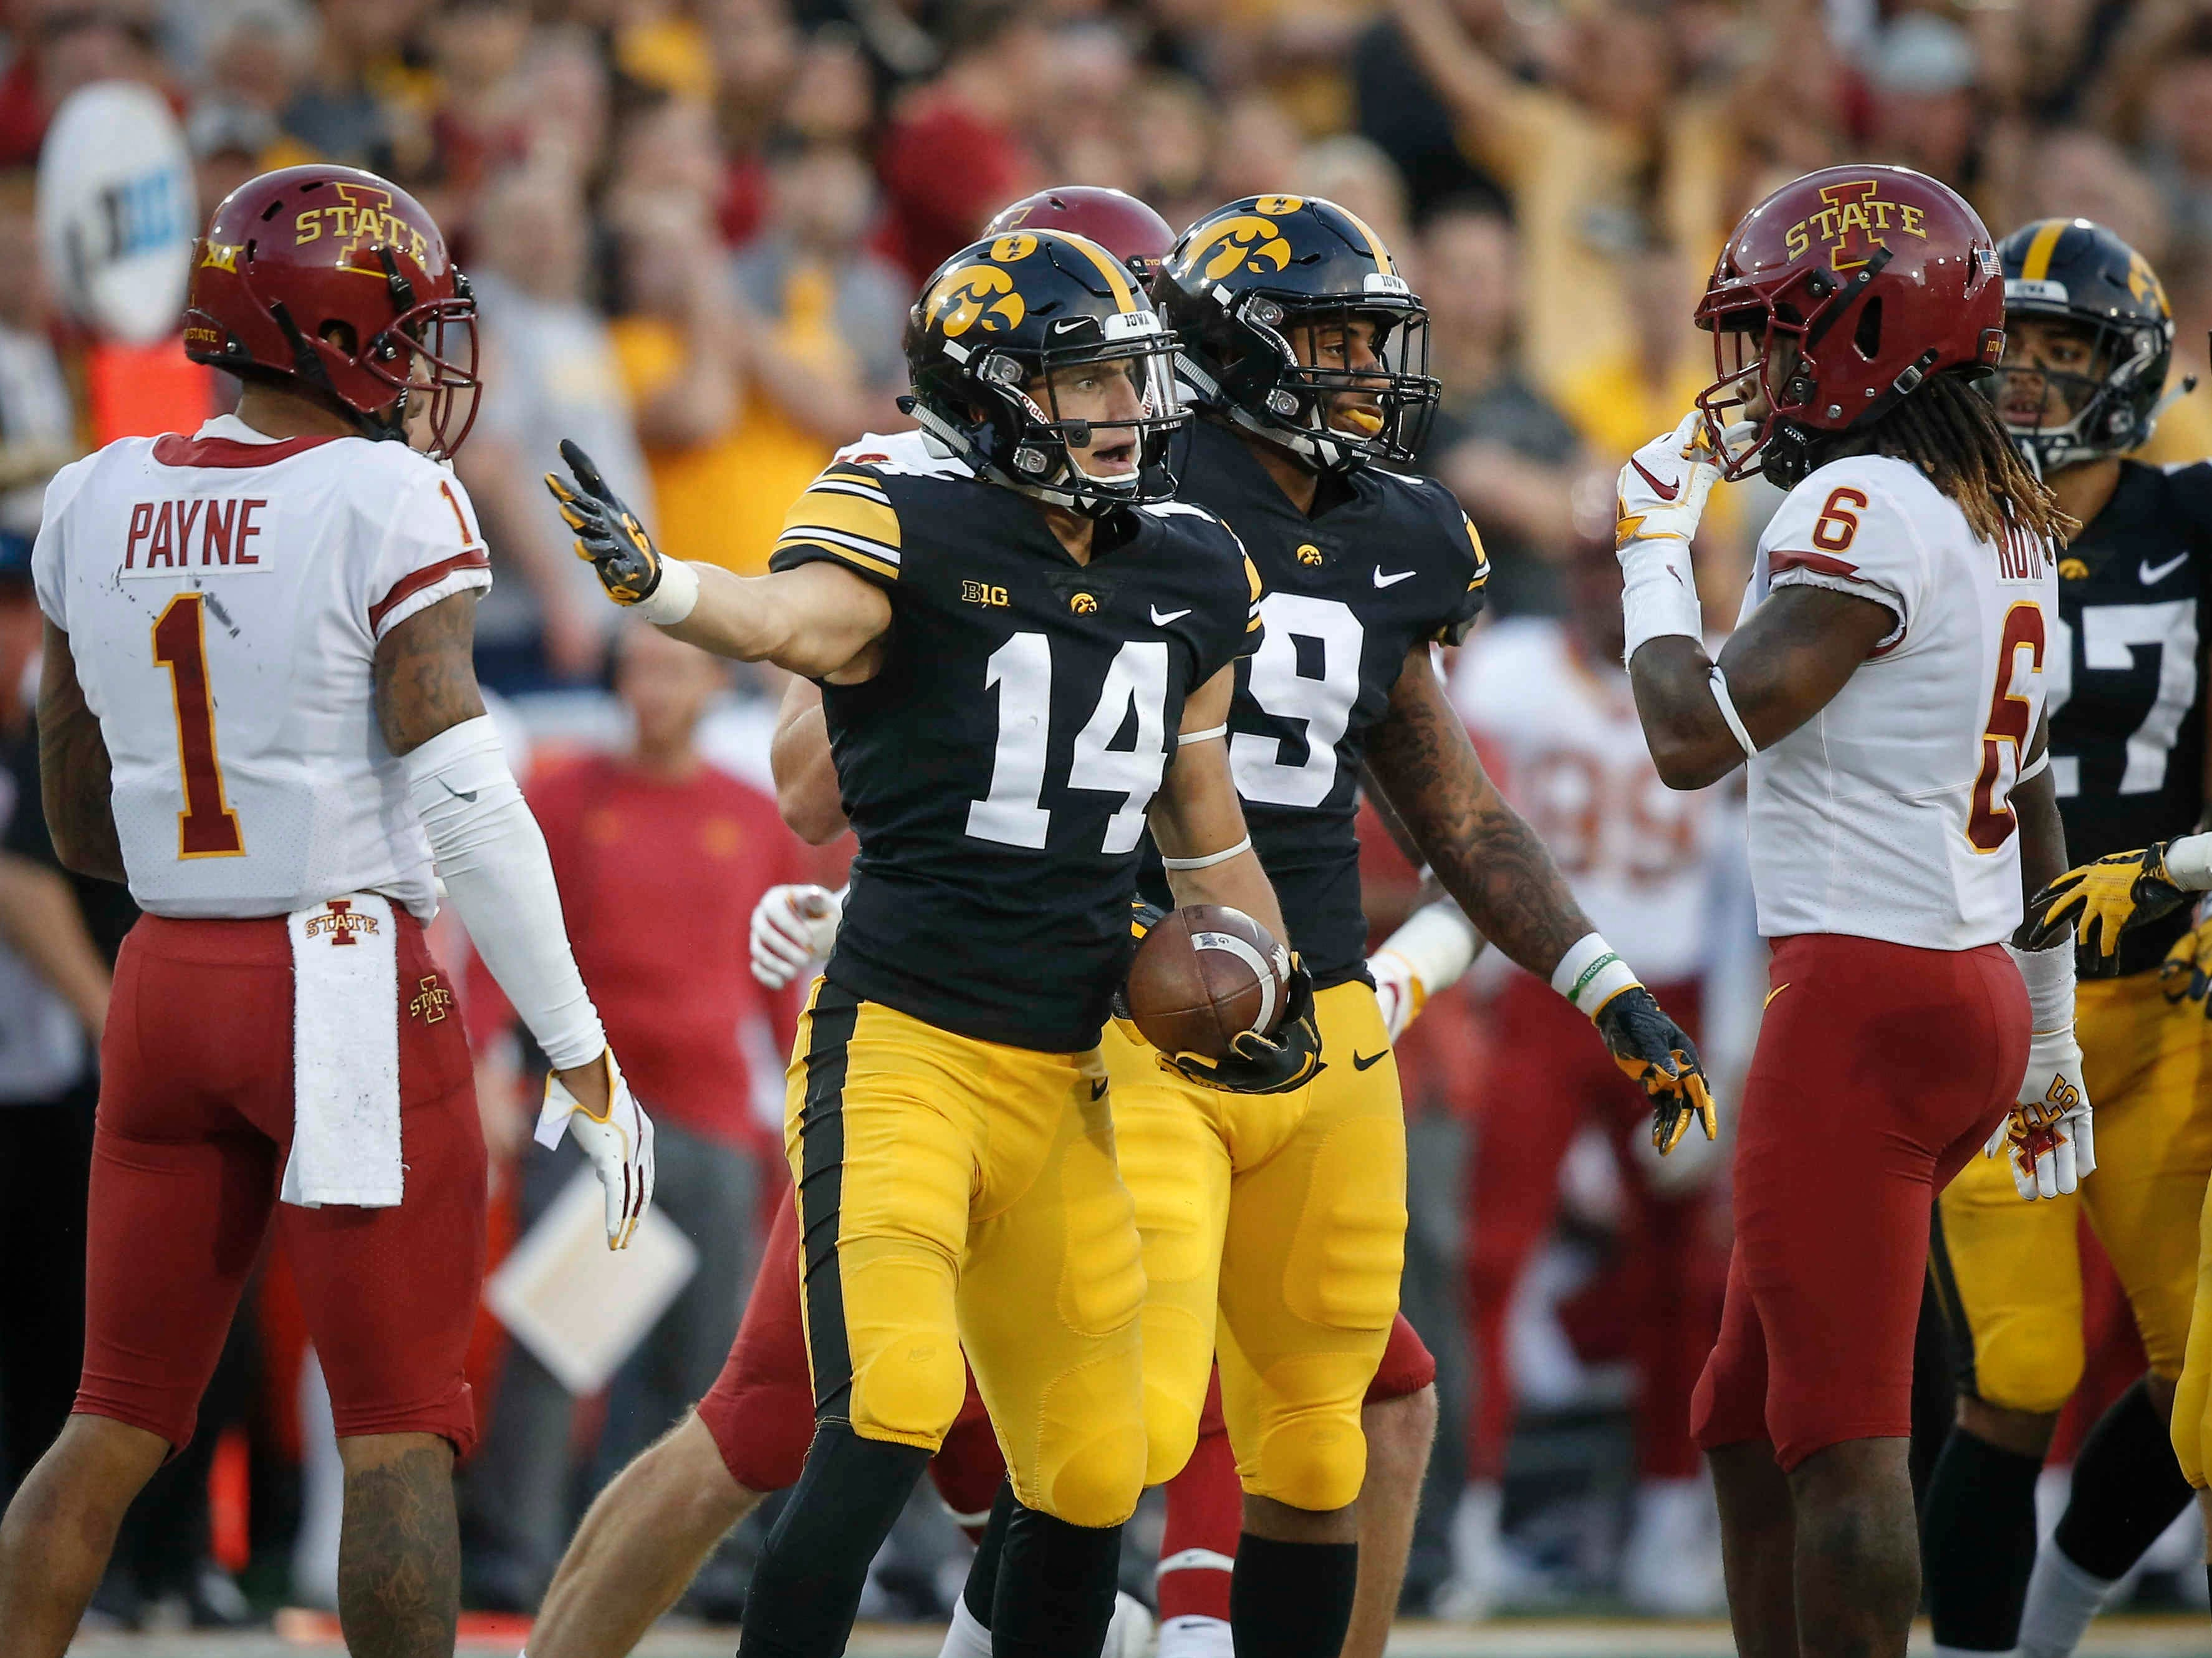 Iowa senior Kyle Groeneweg motions to an Iowa State player after being interfered with on a punt reception on Saturday, Sept. 9, 2018, at Kinnick Stadium in Iowa City.